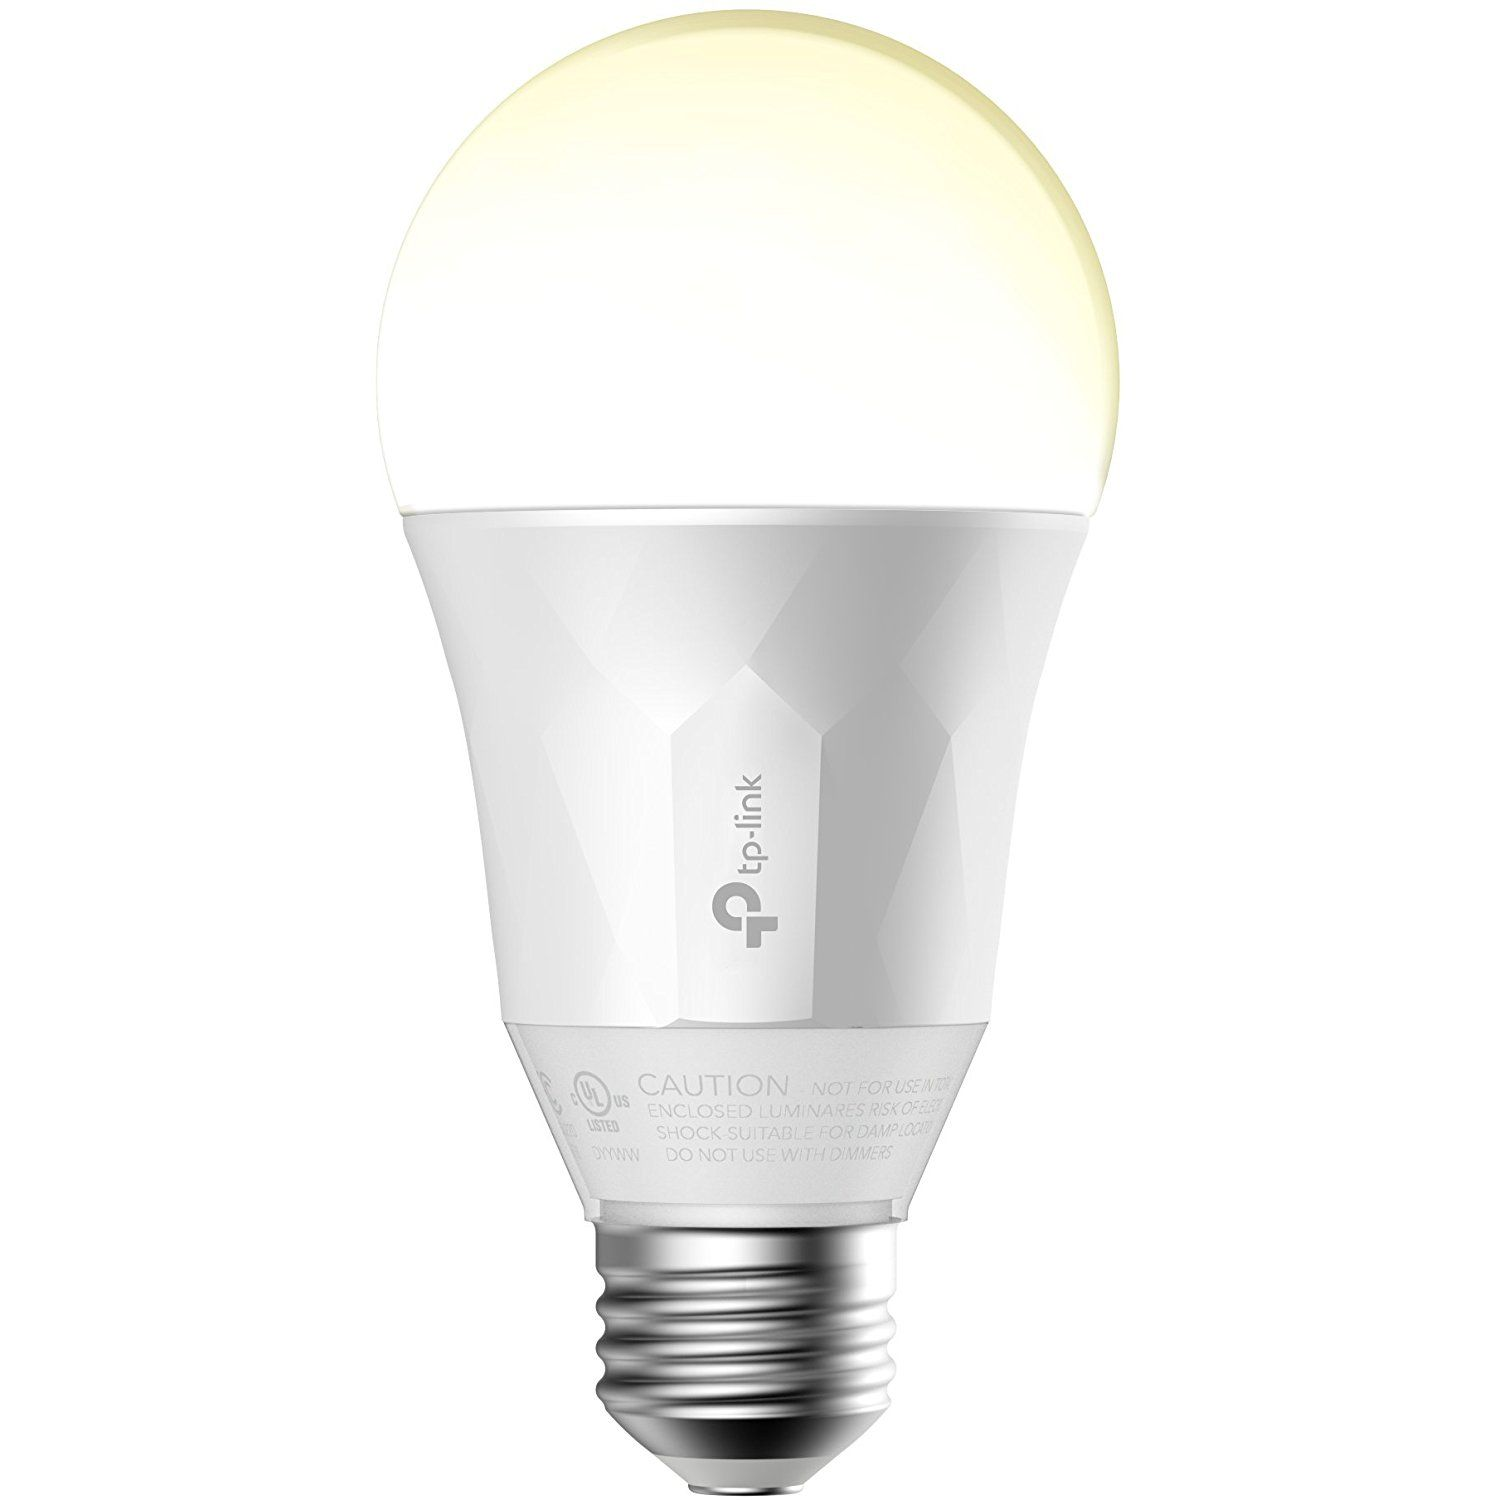 Tp Link Smart Led Light Bulb Wi Fi Dimmable White 50w Equivalent Works With Amazon Alexa And Google Assistant Smart Bulb Smart Light Bulbs Led Light Bulbs